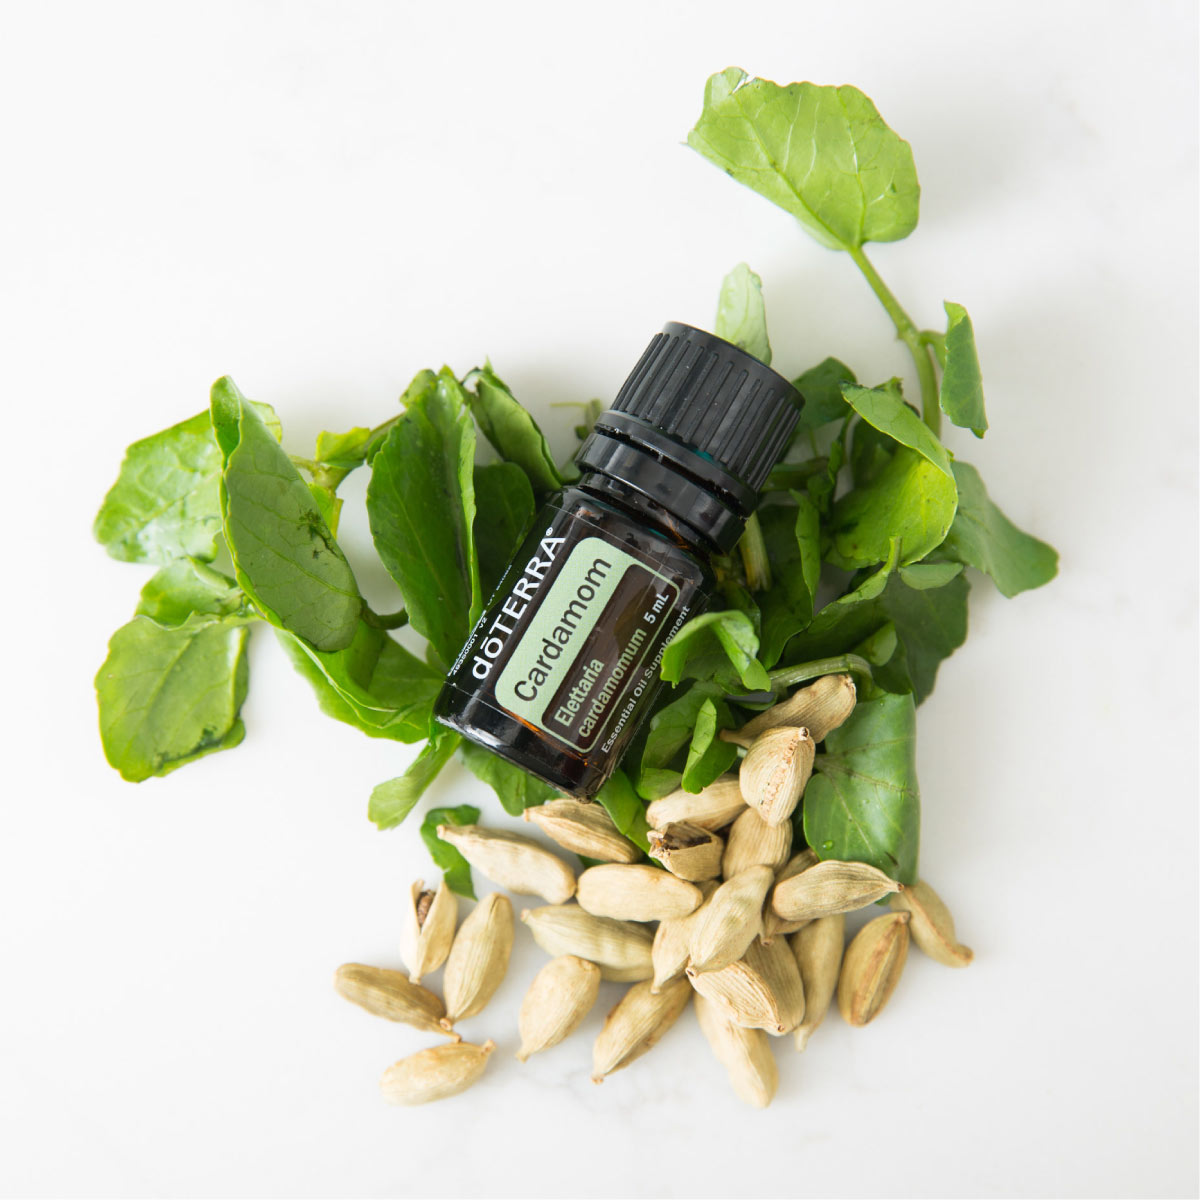 Bottle of Cardamom essential oil with green leaves and fresh cardamom seeds. Cardamom oil has many benefits and uses. Try using Cardamom essential oil to add flavor when cooking, to promote feelings of easy breathing, or to aid in digestion.